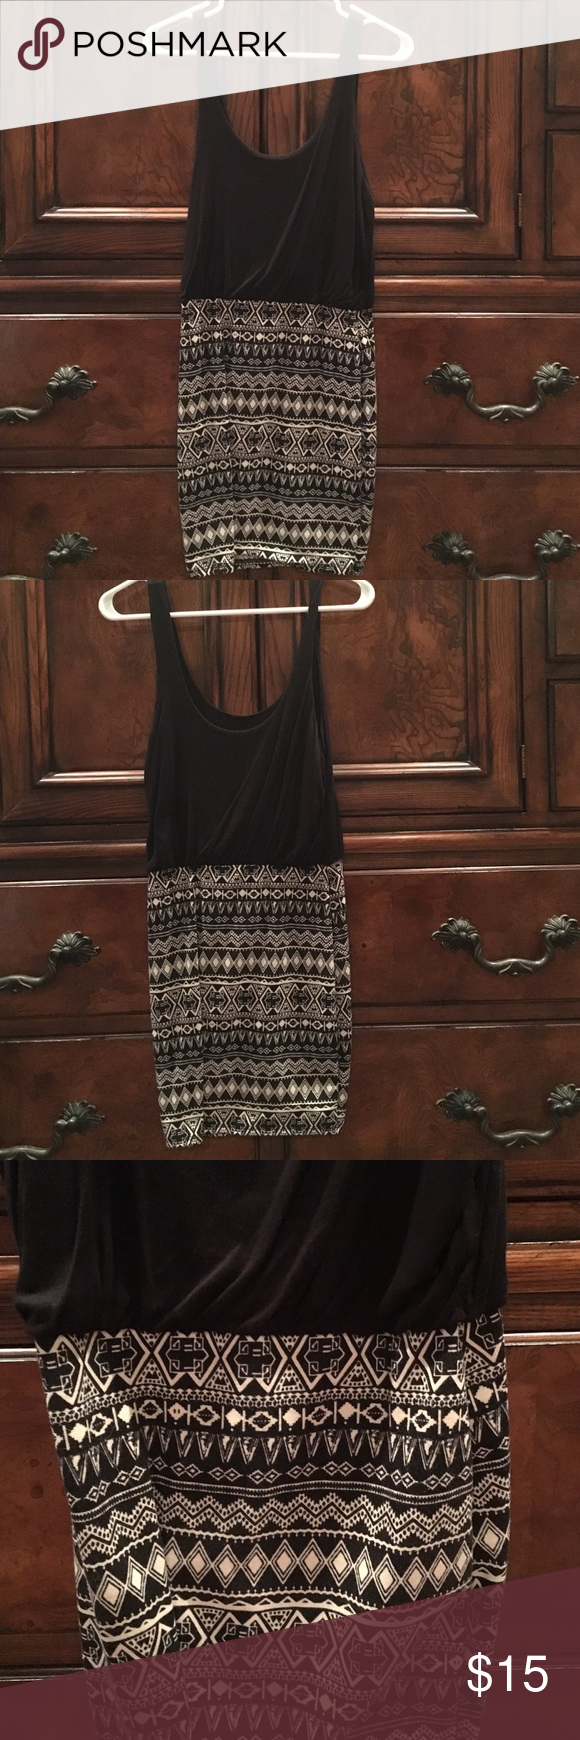 Black sleeveless dress Super cute and comfy black, tribal pattern sleeveless dress. 85% polyester 15% Rayon. Great with flats or heels. Kirra Dresses